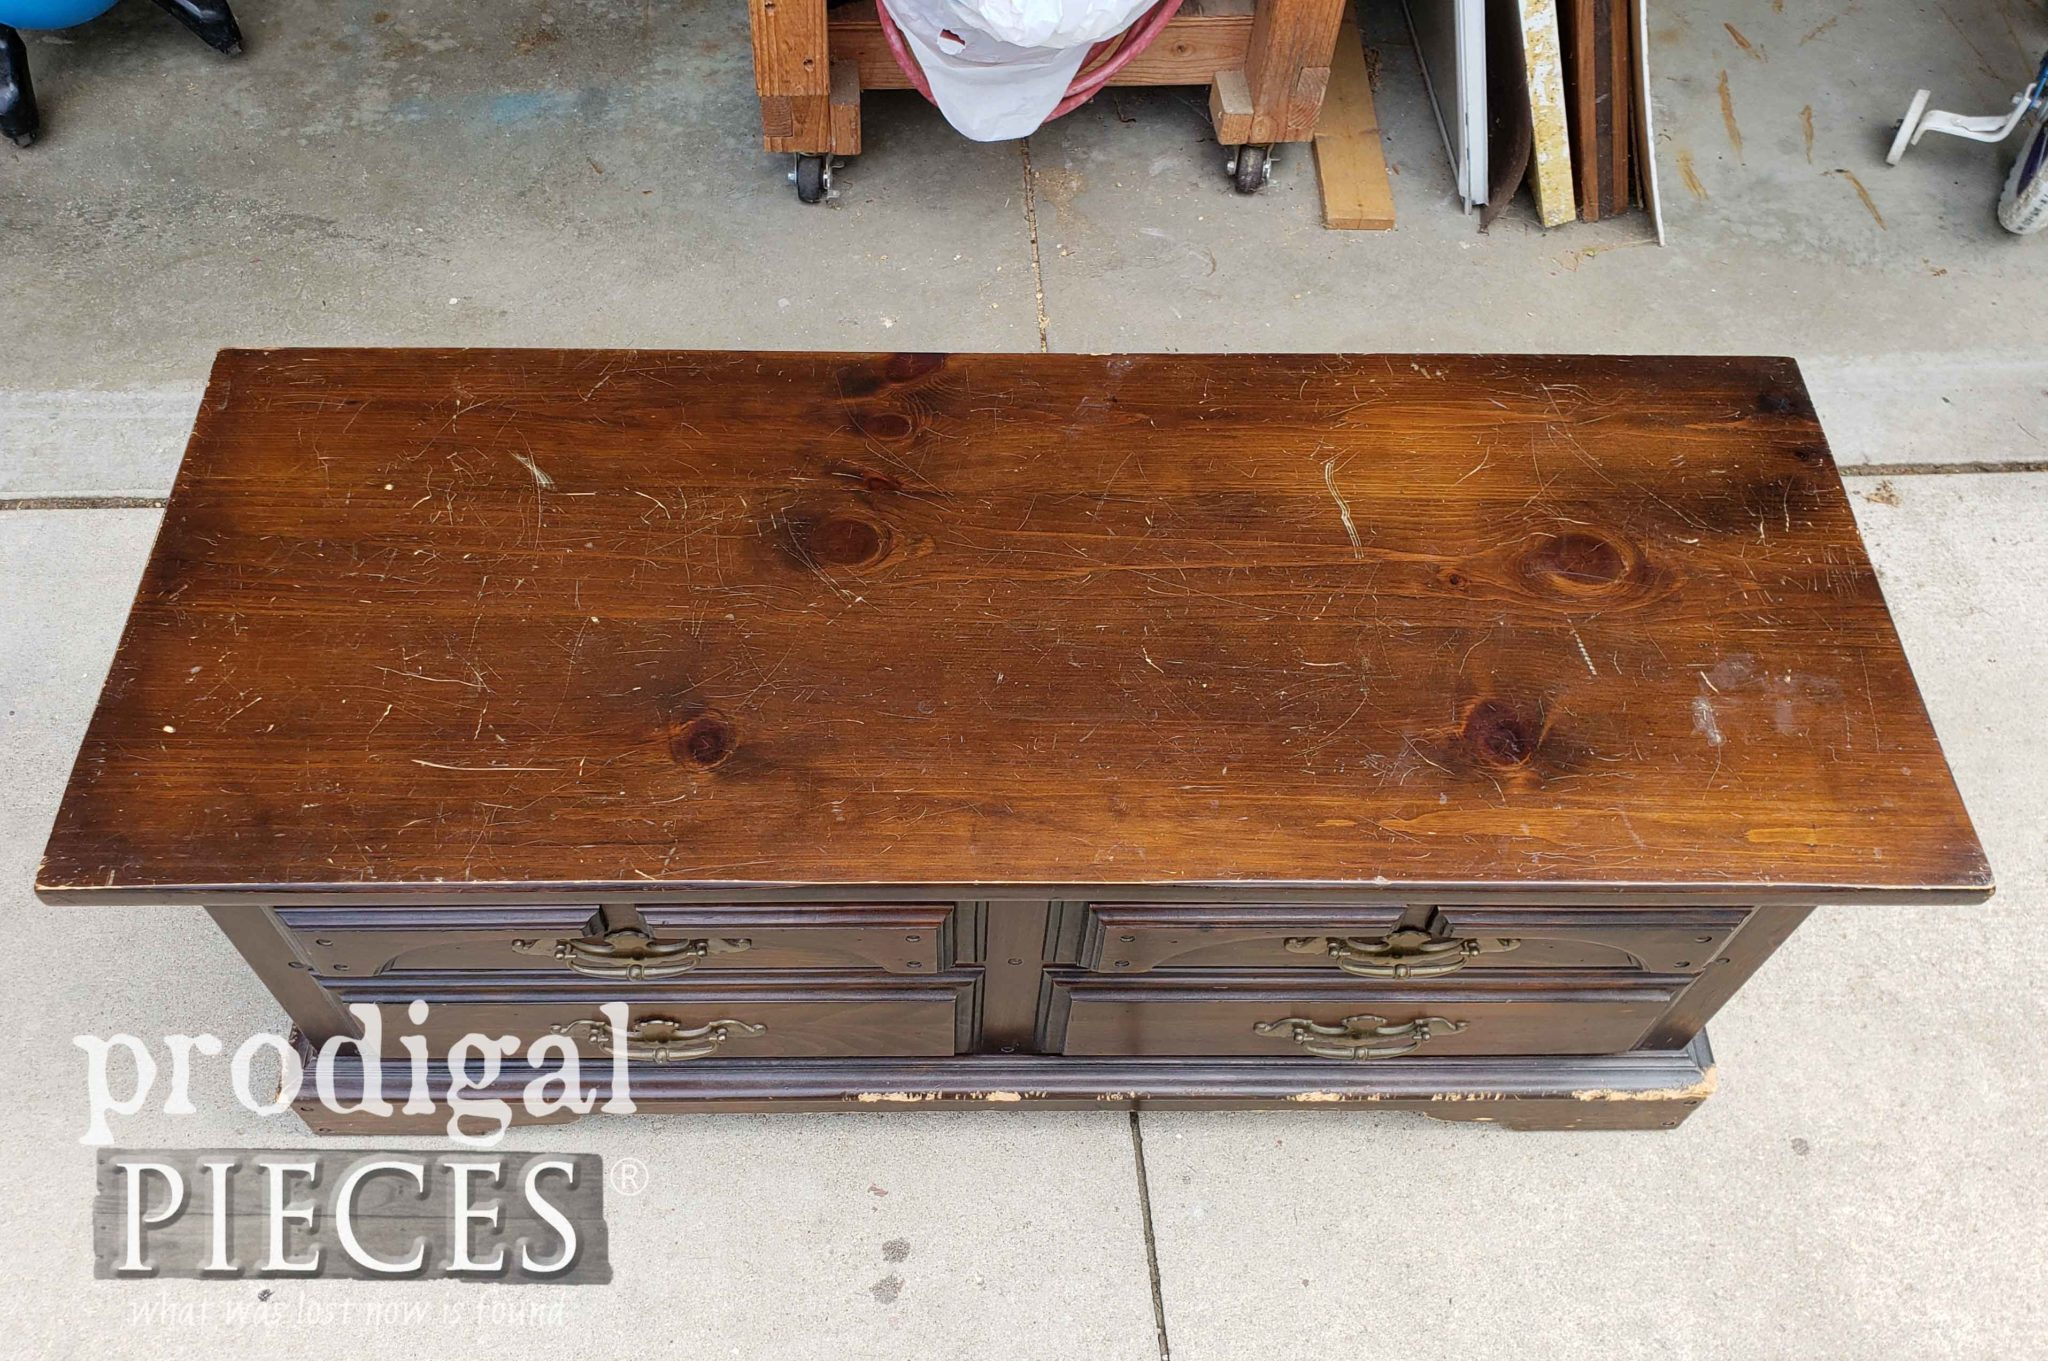 Vintage Blanket Chest Top | prodigalpieces.com